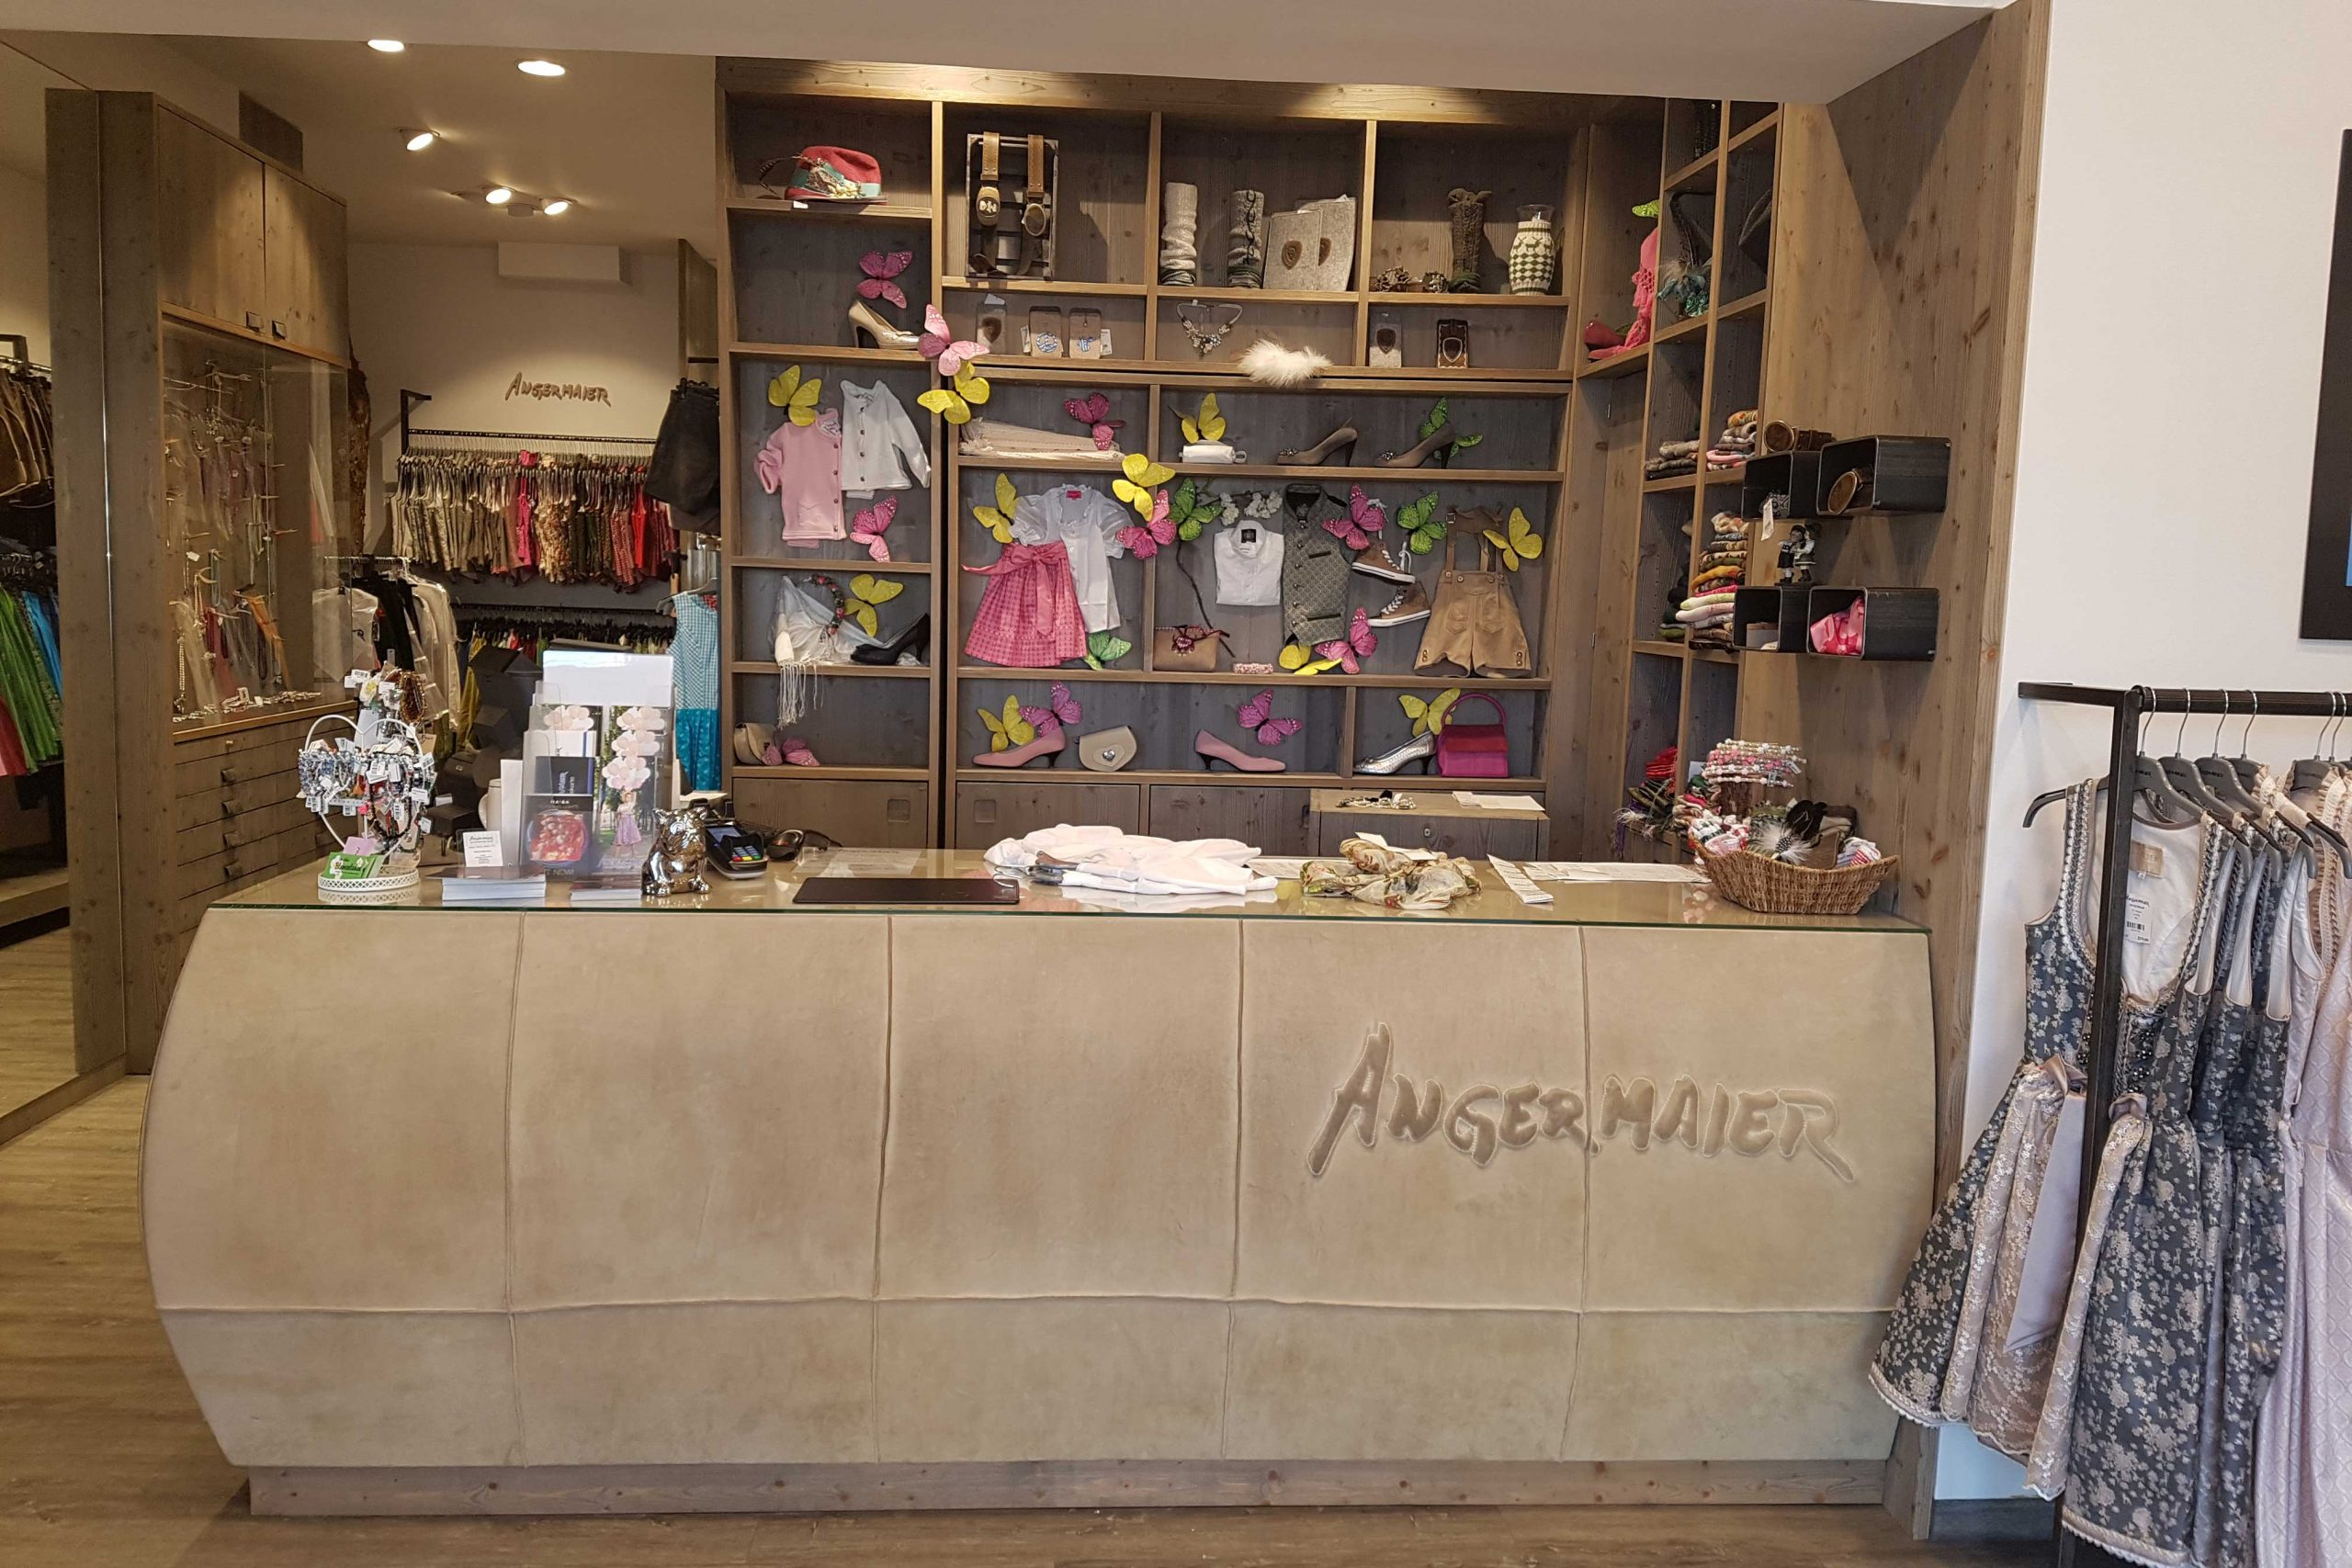 angermaier_store